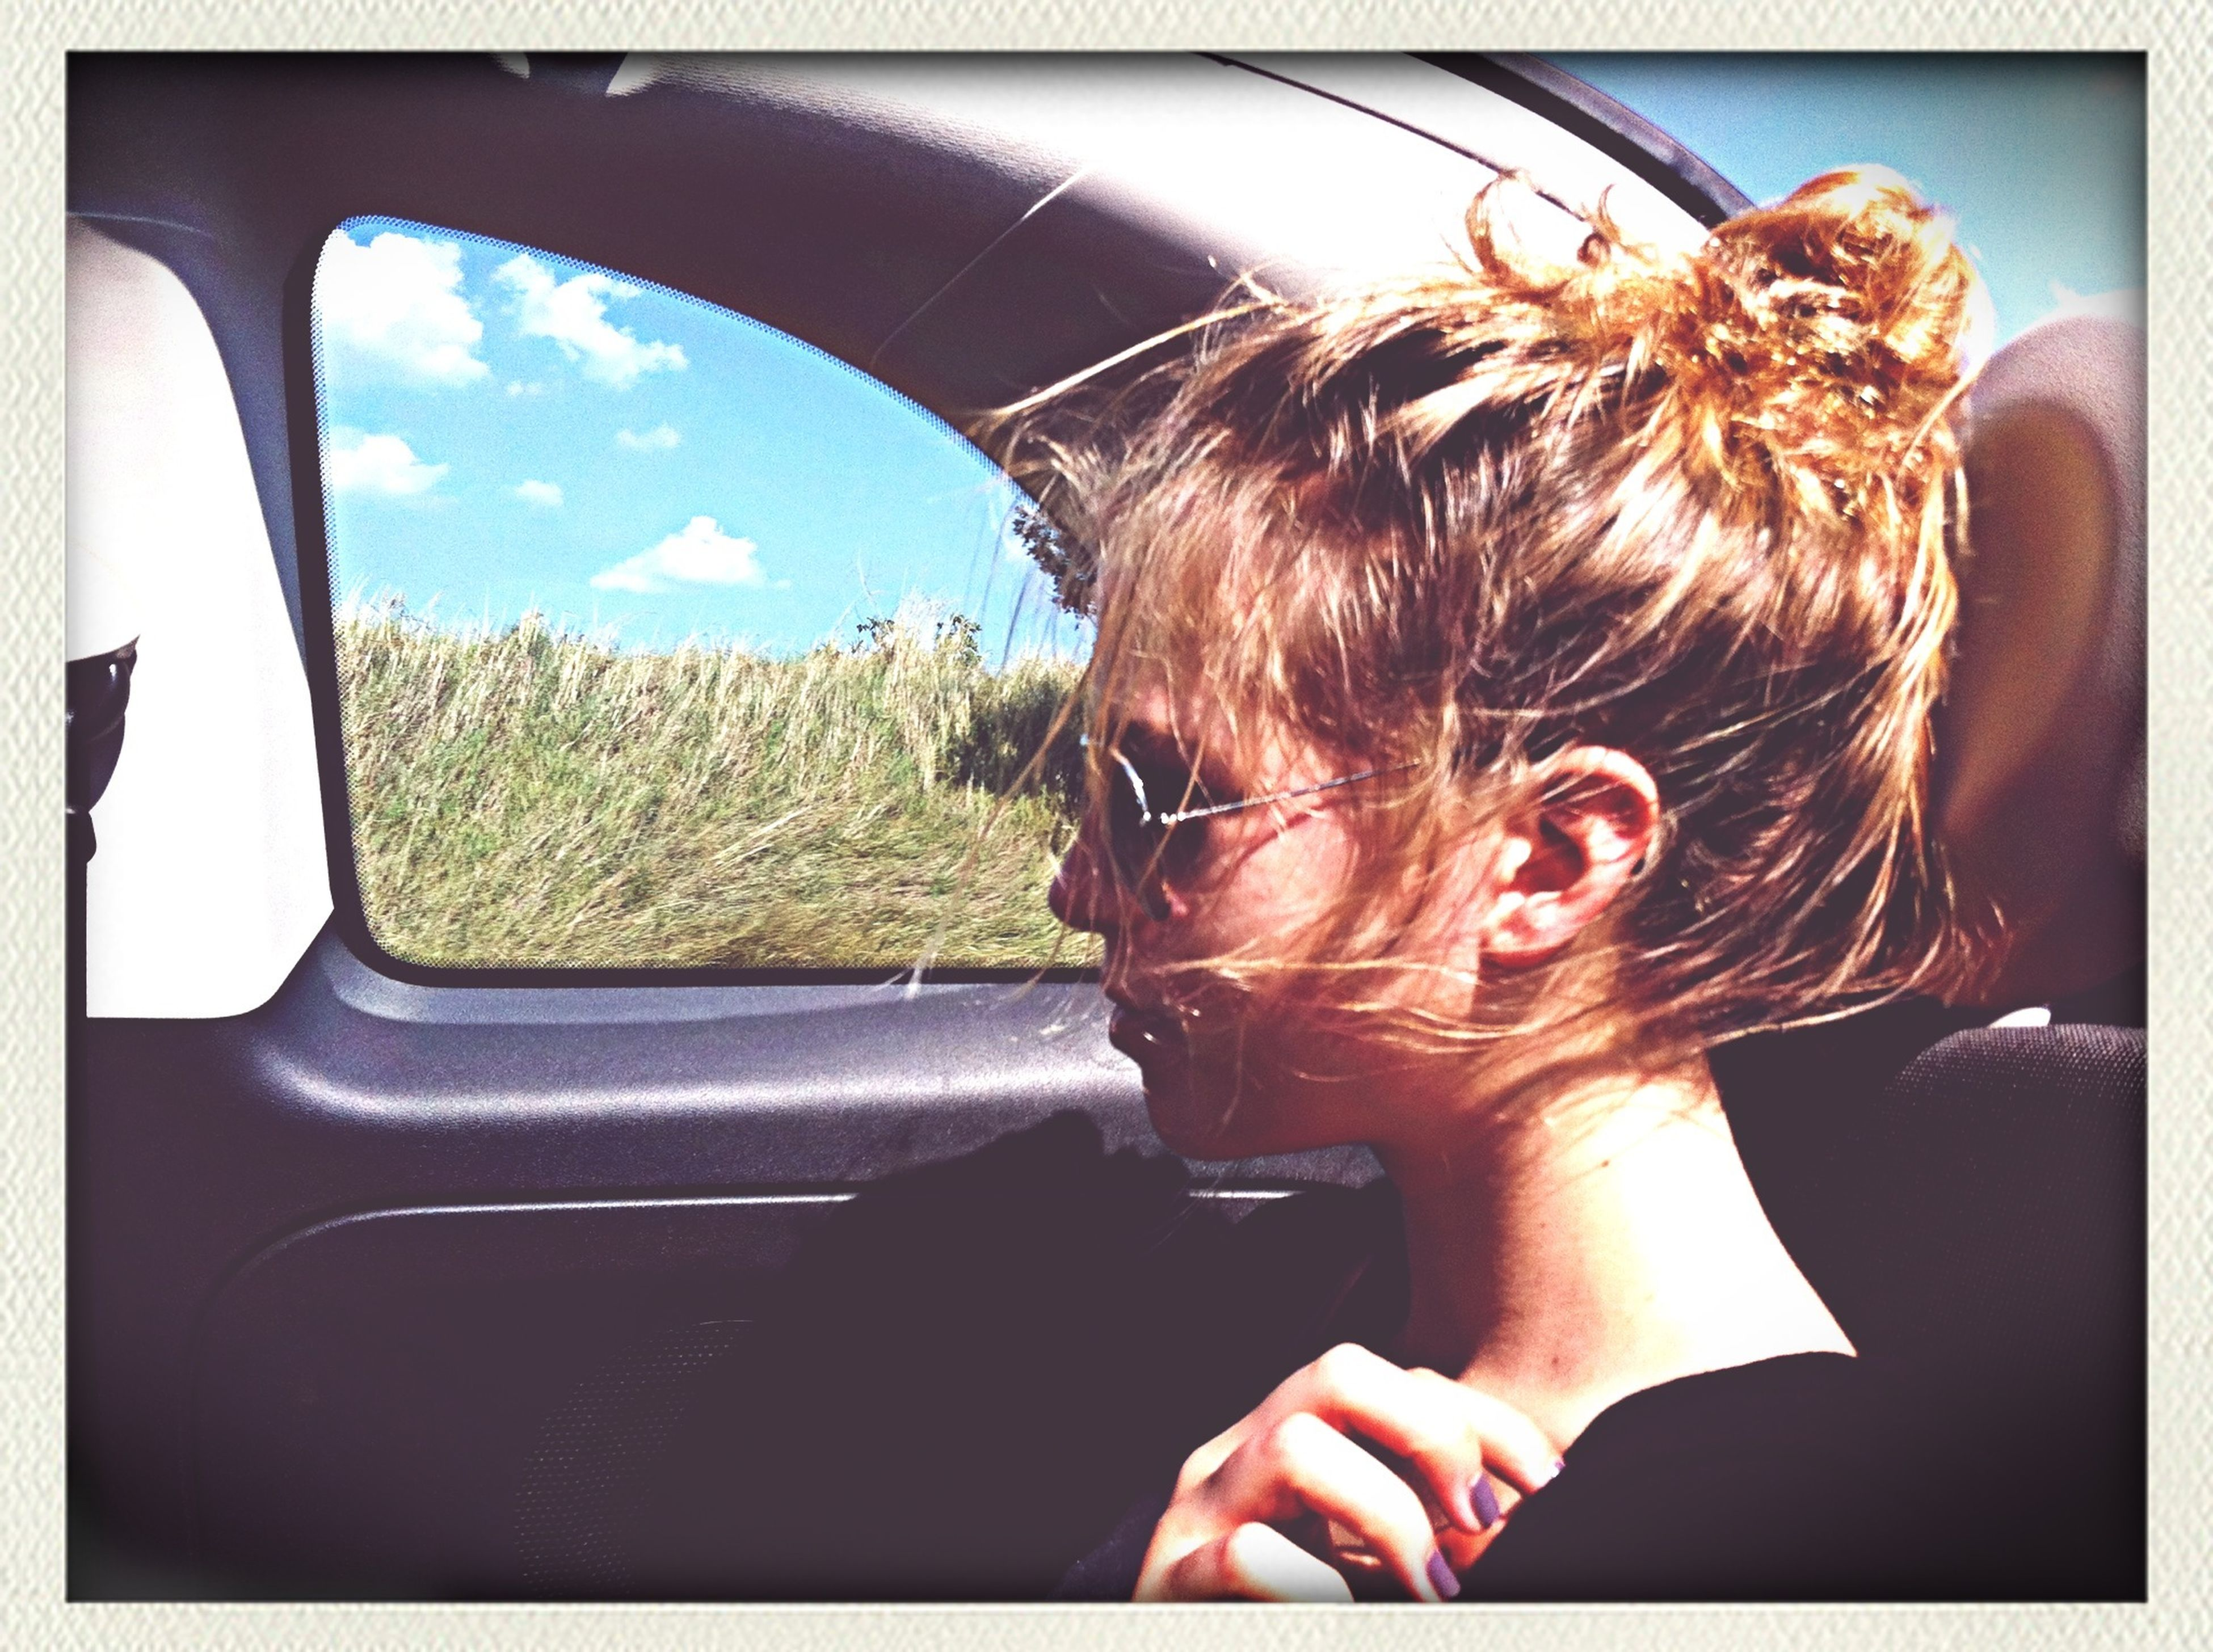 transfer print, auto post production filter, lifestyles, leisure activity, headshot, young adult, sky, sunglasses, young women, head and shoulders, person, window, car, transportation, sunlight, side view, vehicle interior, car interior